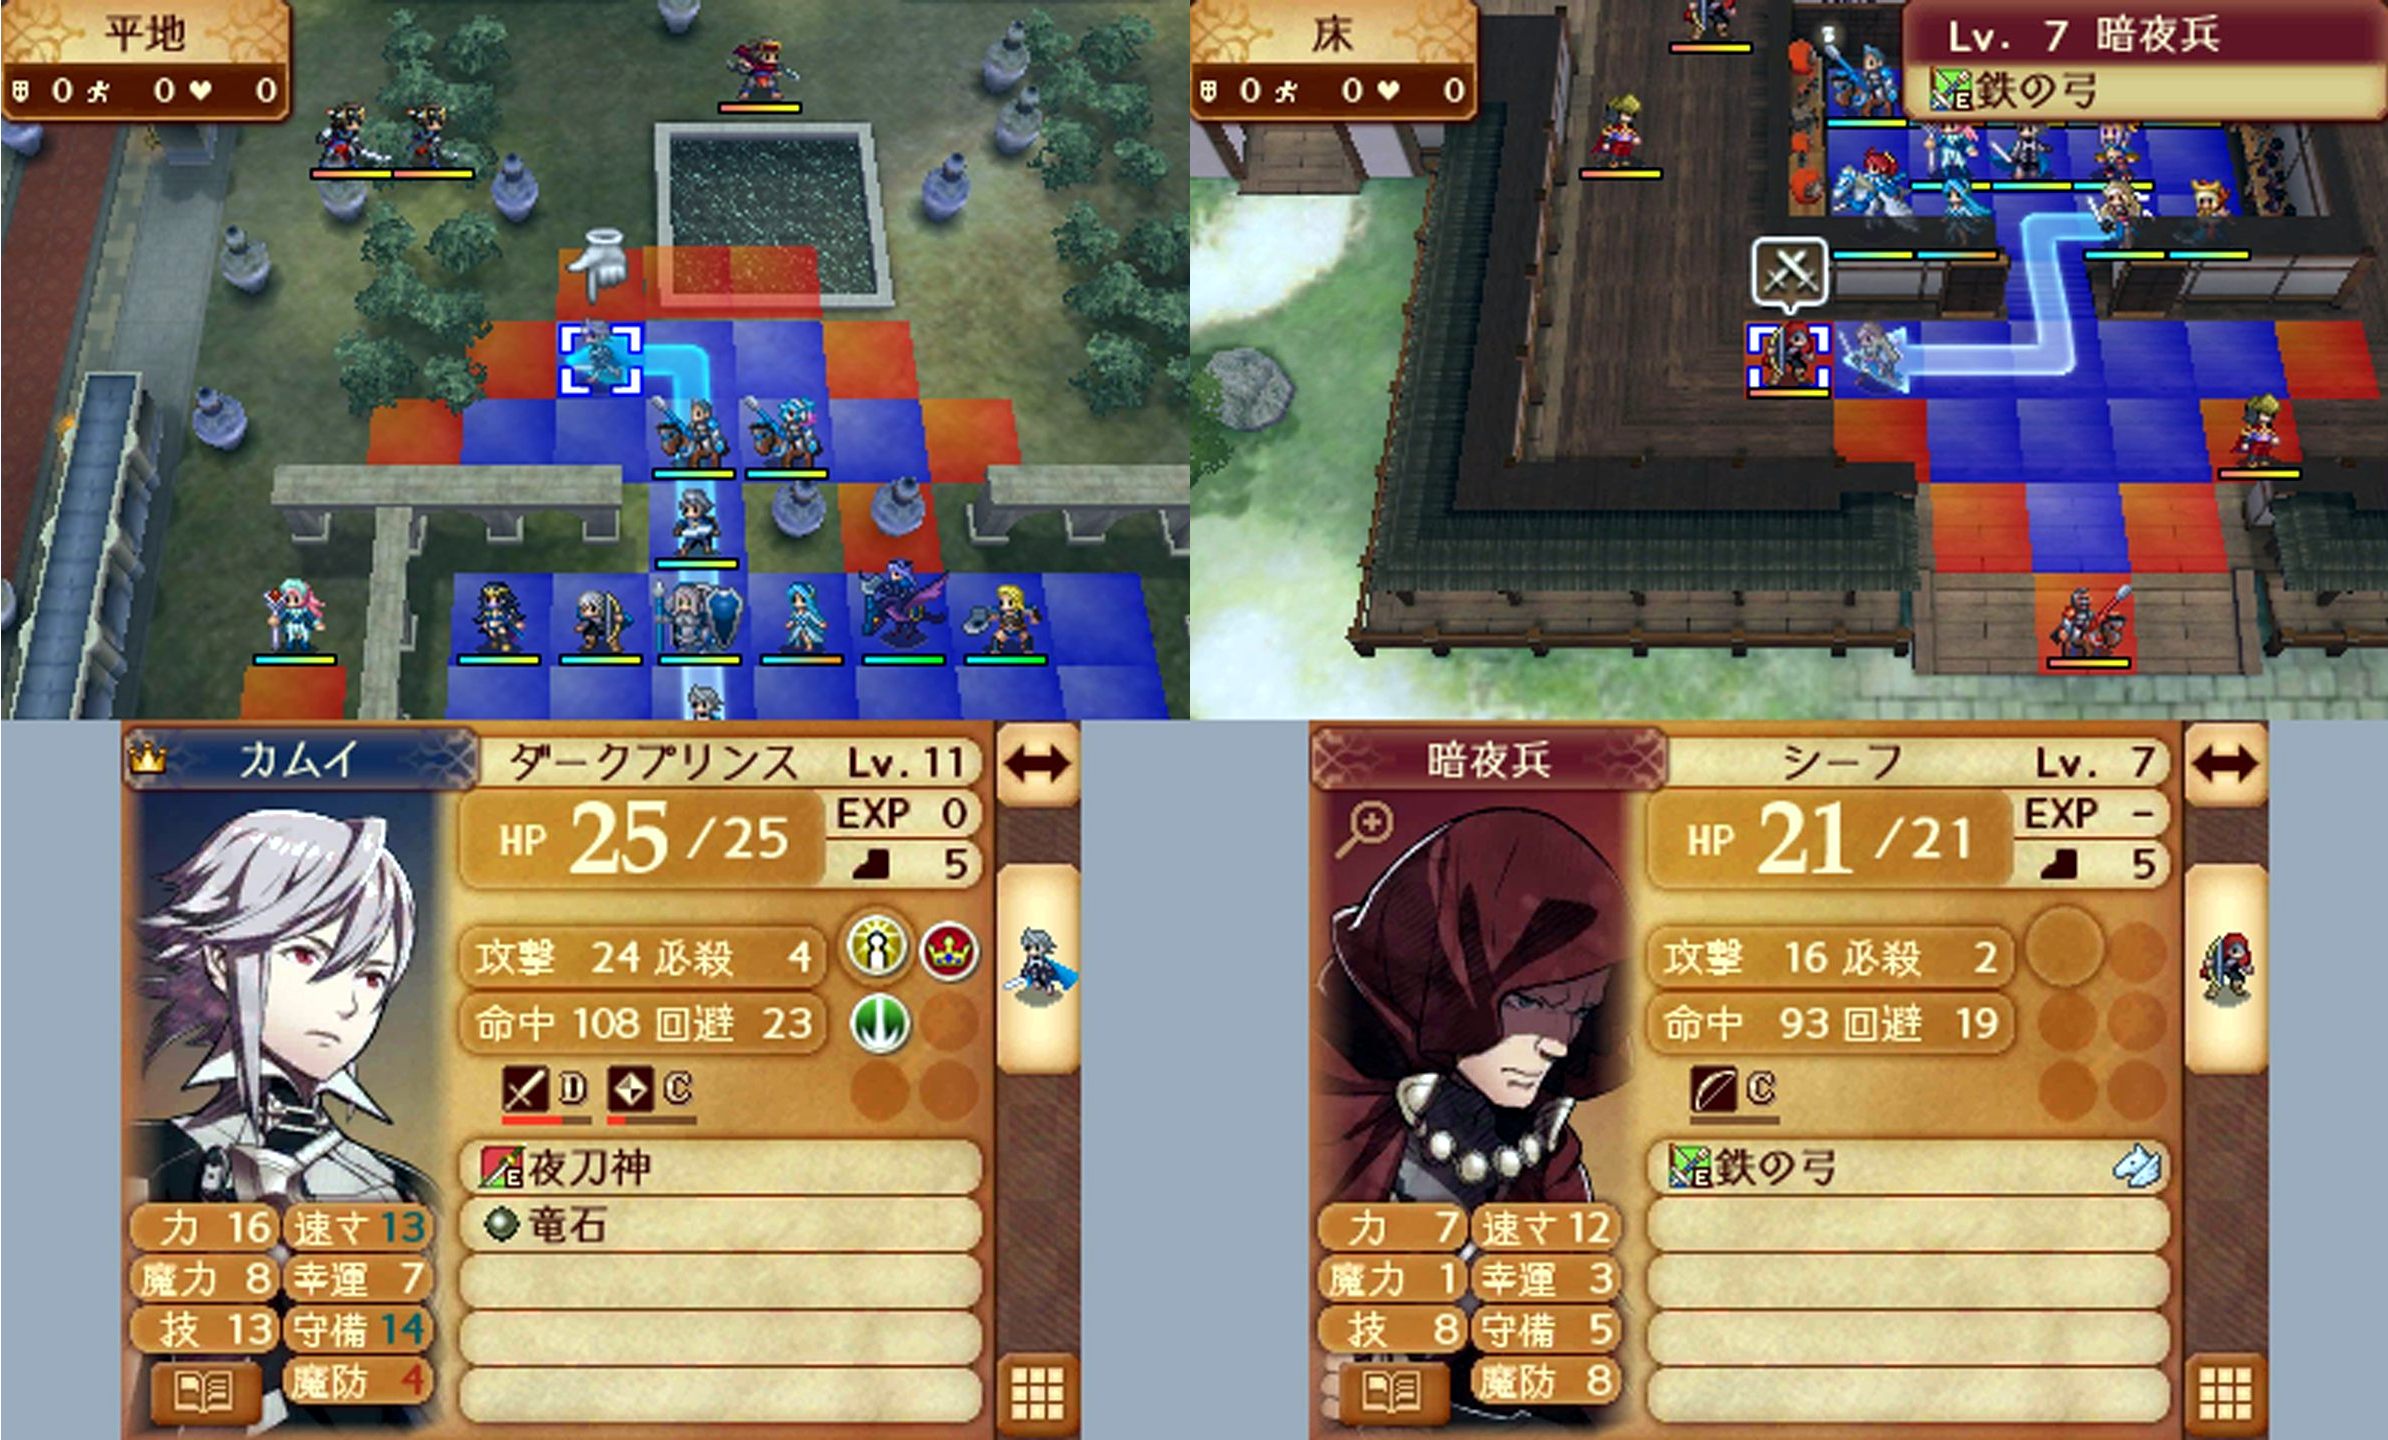 The character status screen while on the map.